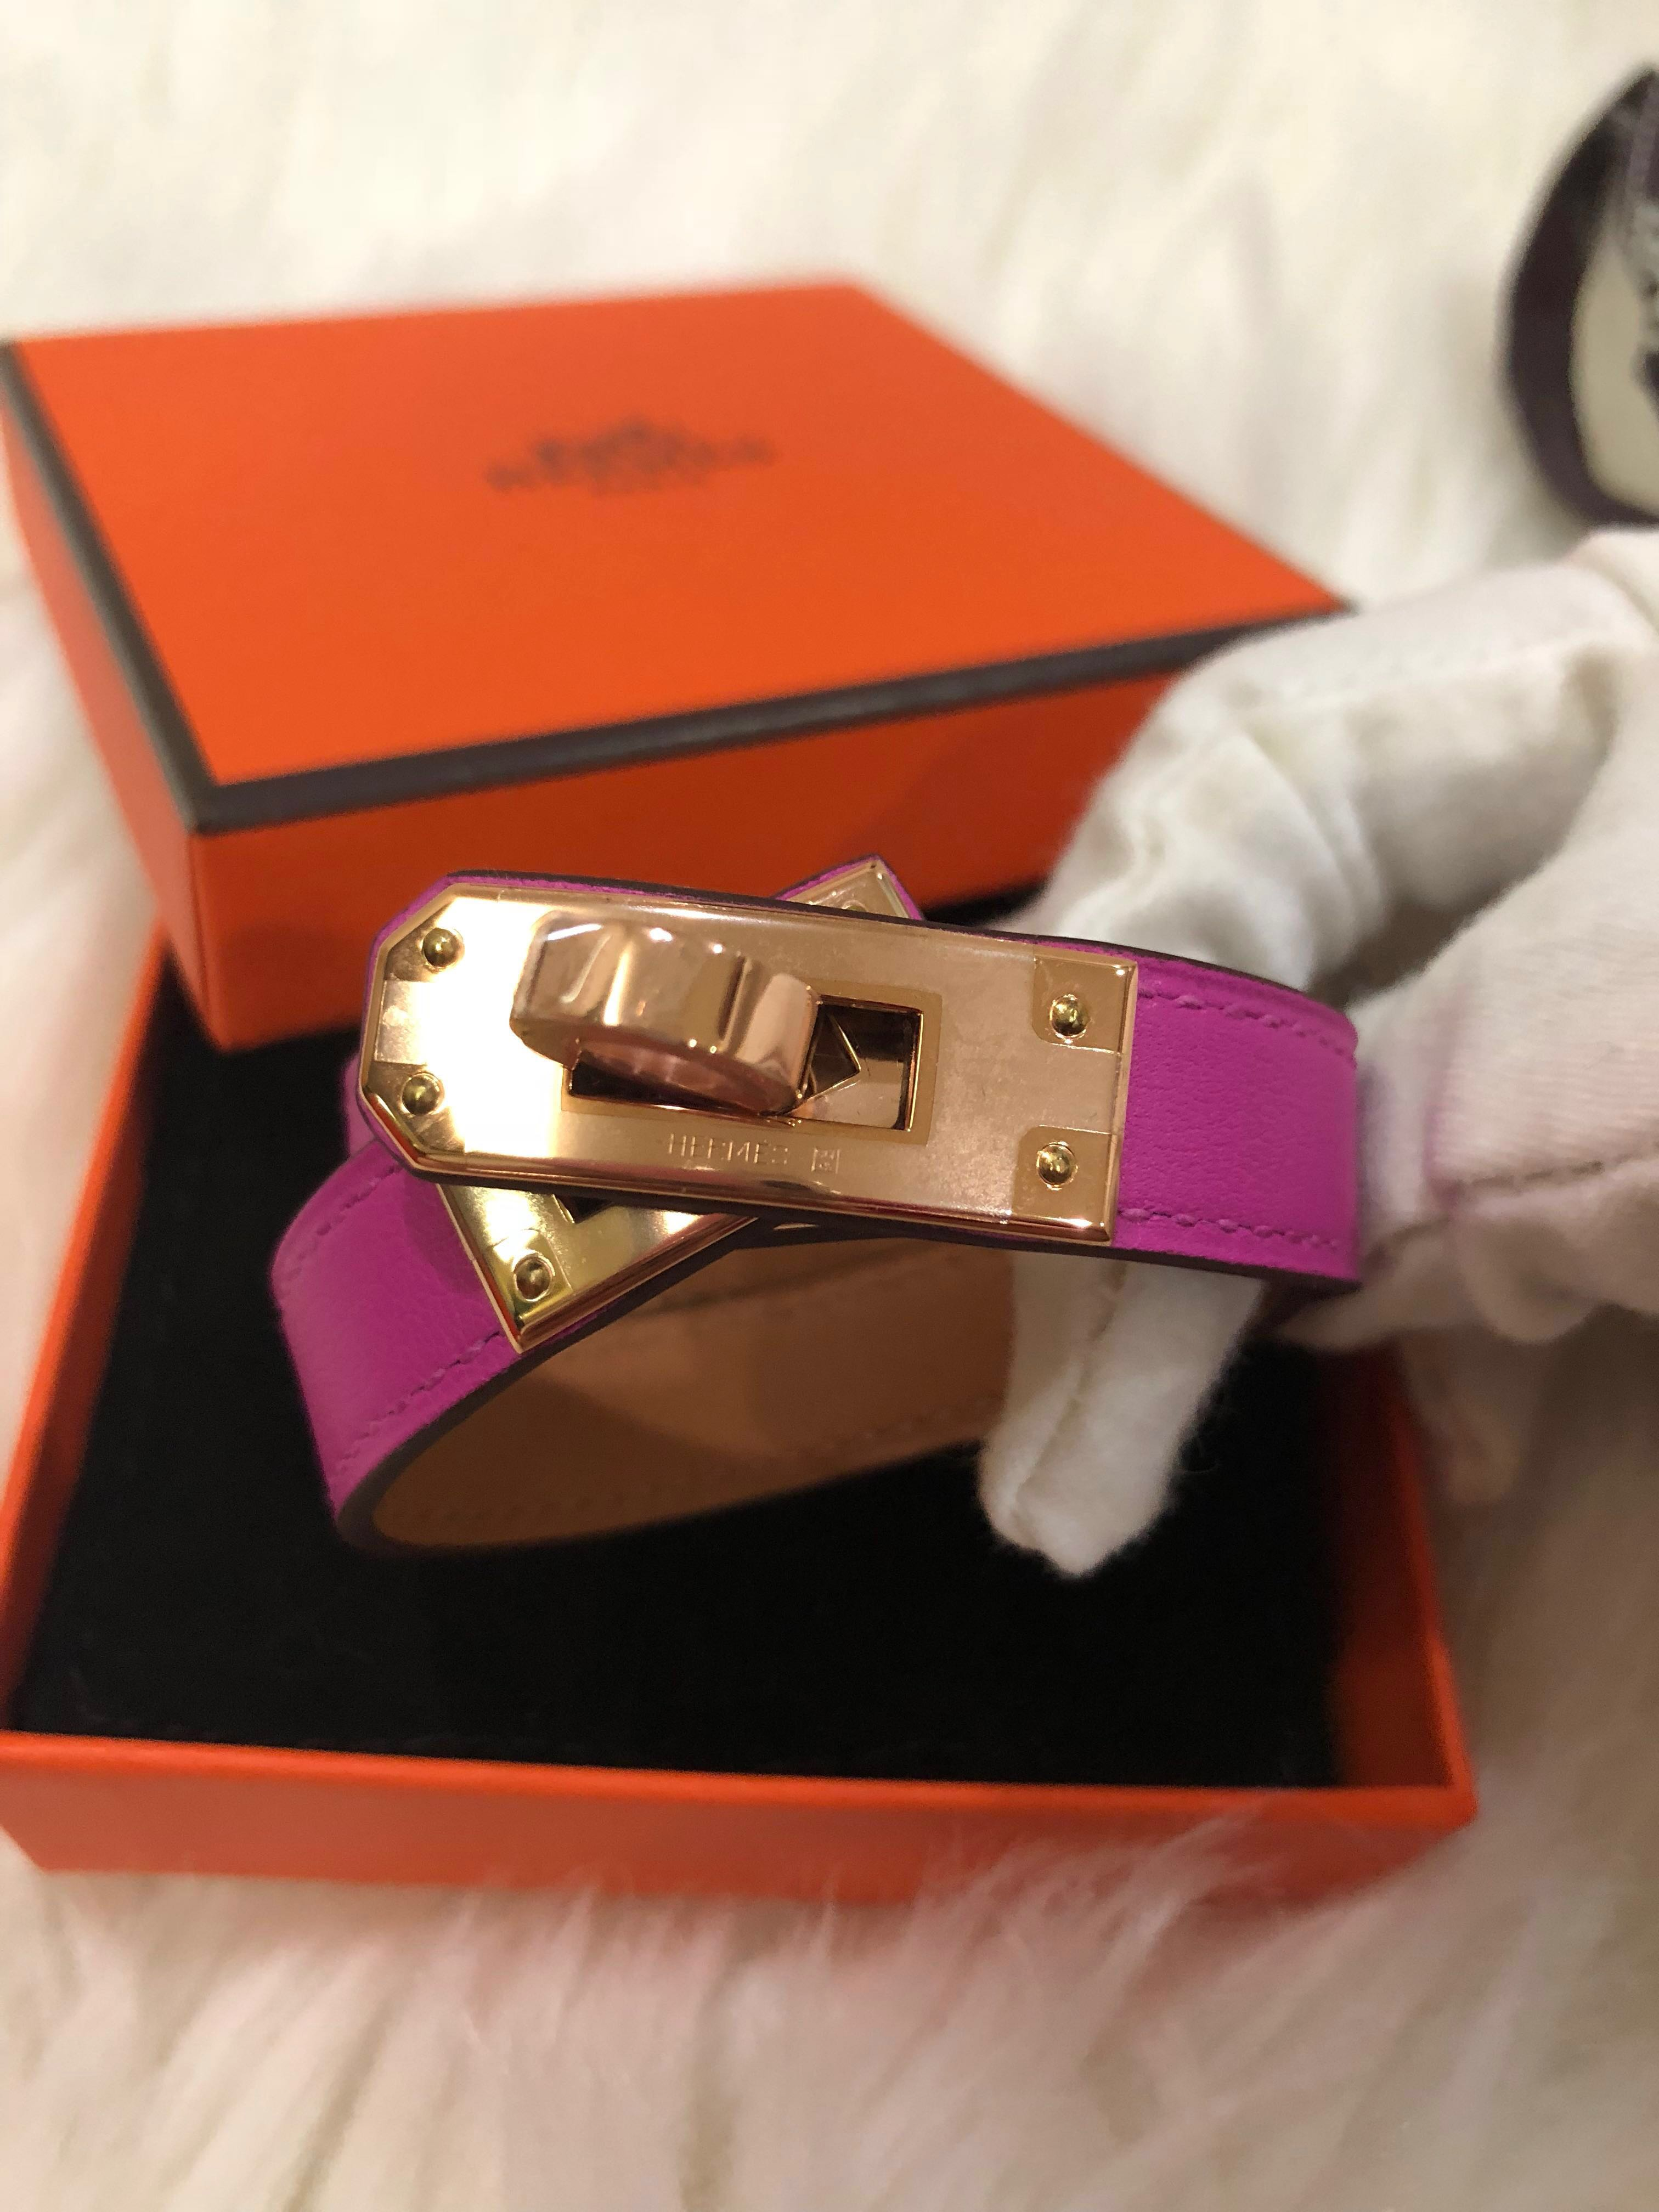 BNIB Hermes Kelly double tour bracelet, Luxury, Accessories, Others on  Carousell 620dd20cf83